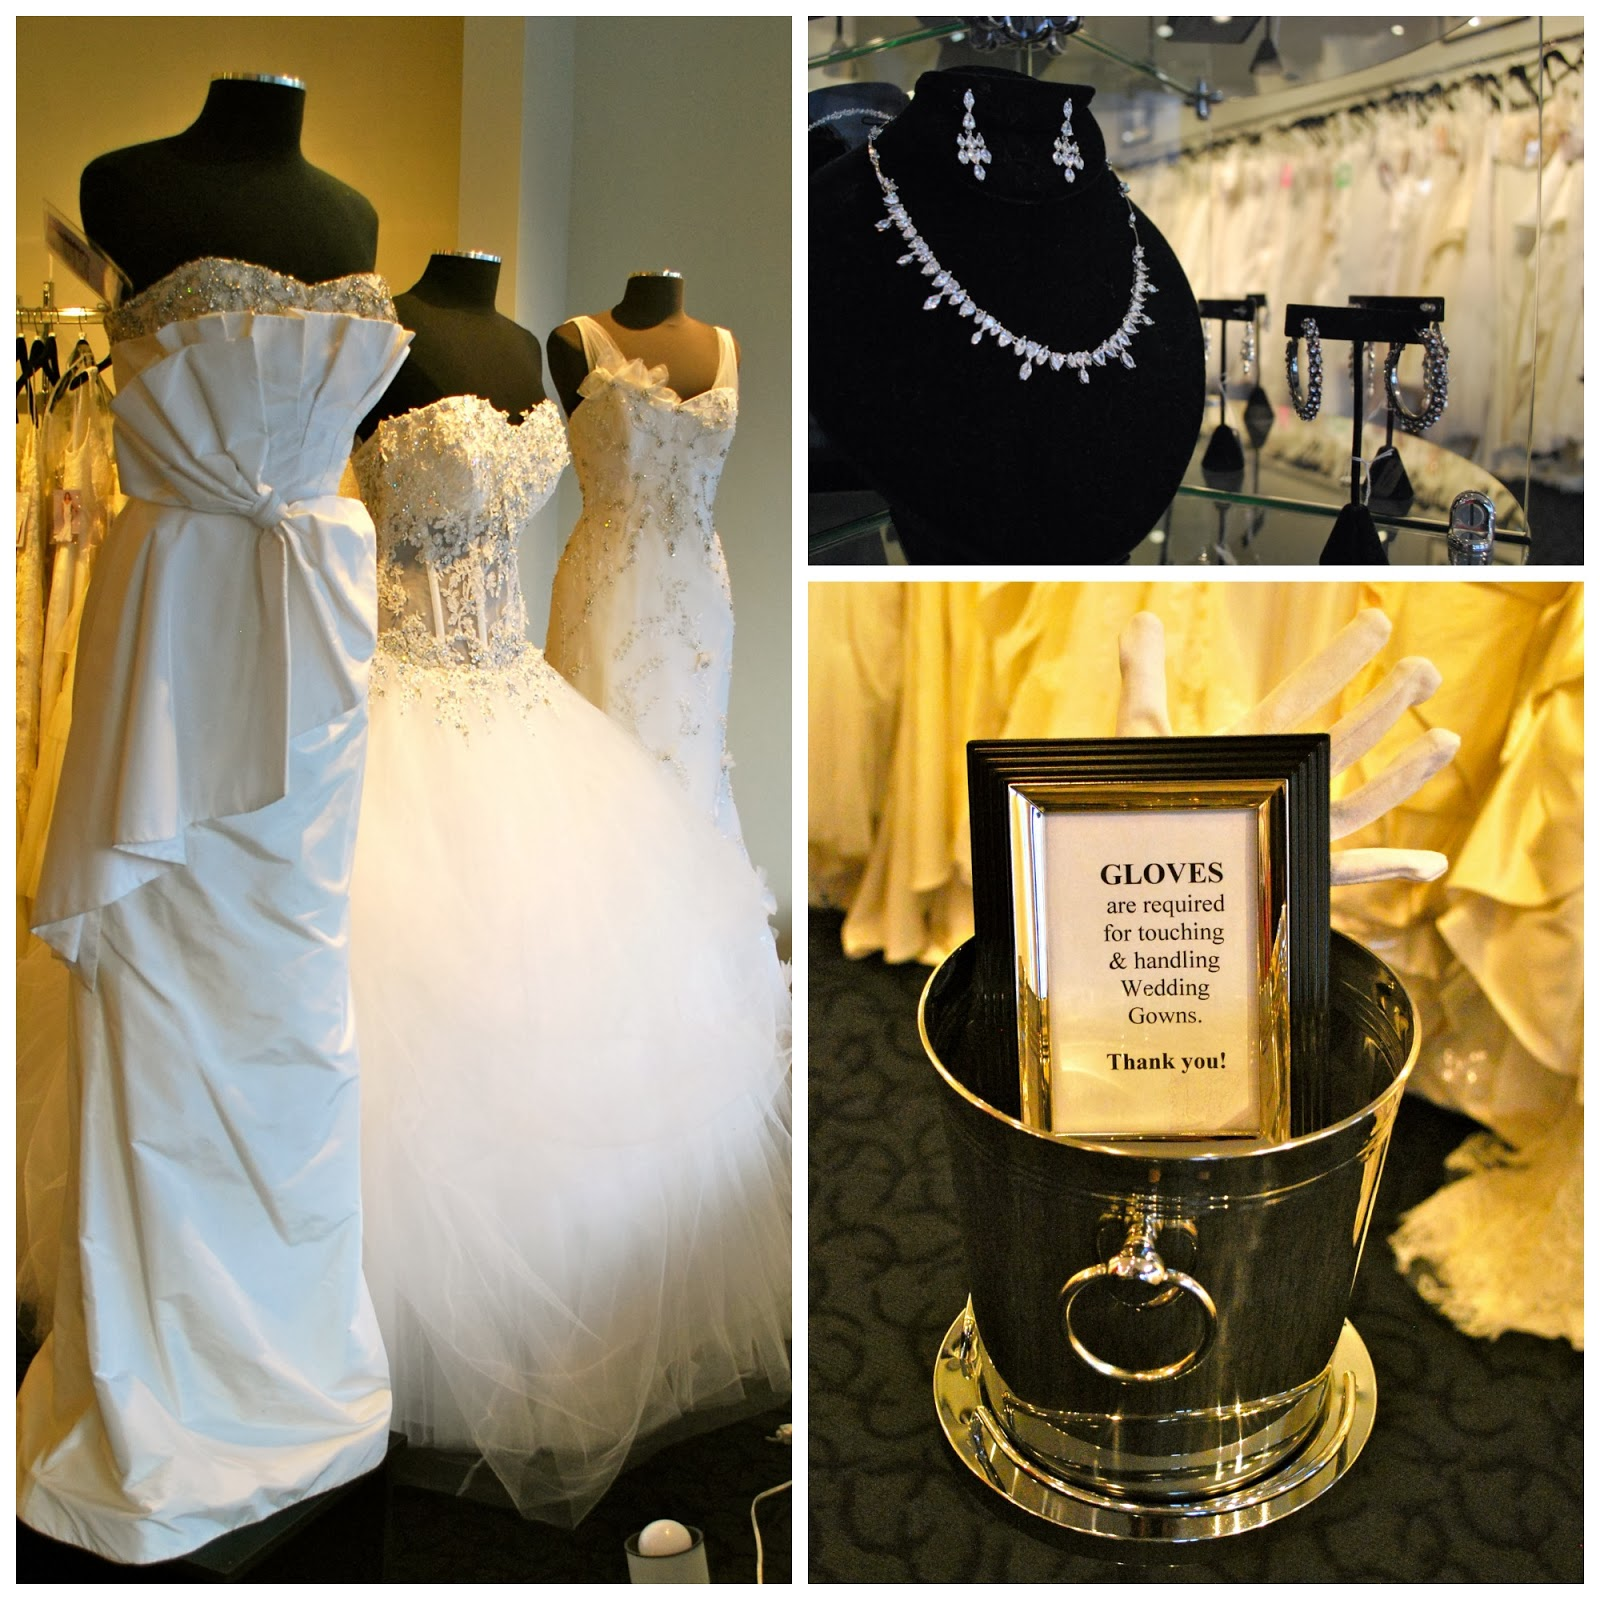 premier bridal shop bridal sense offers a full line of bridal gowns